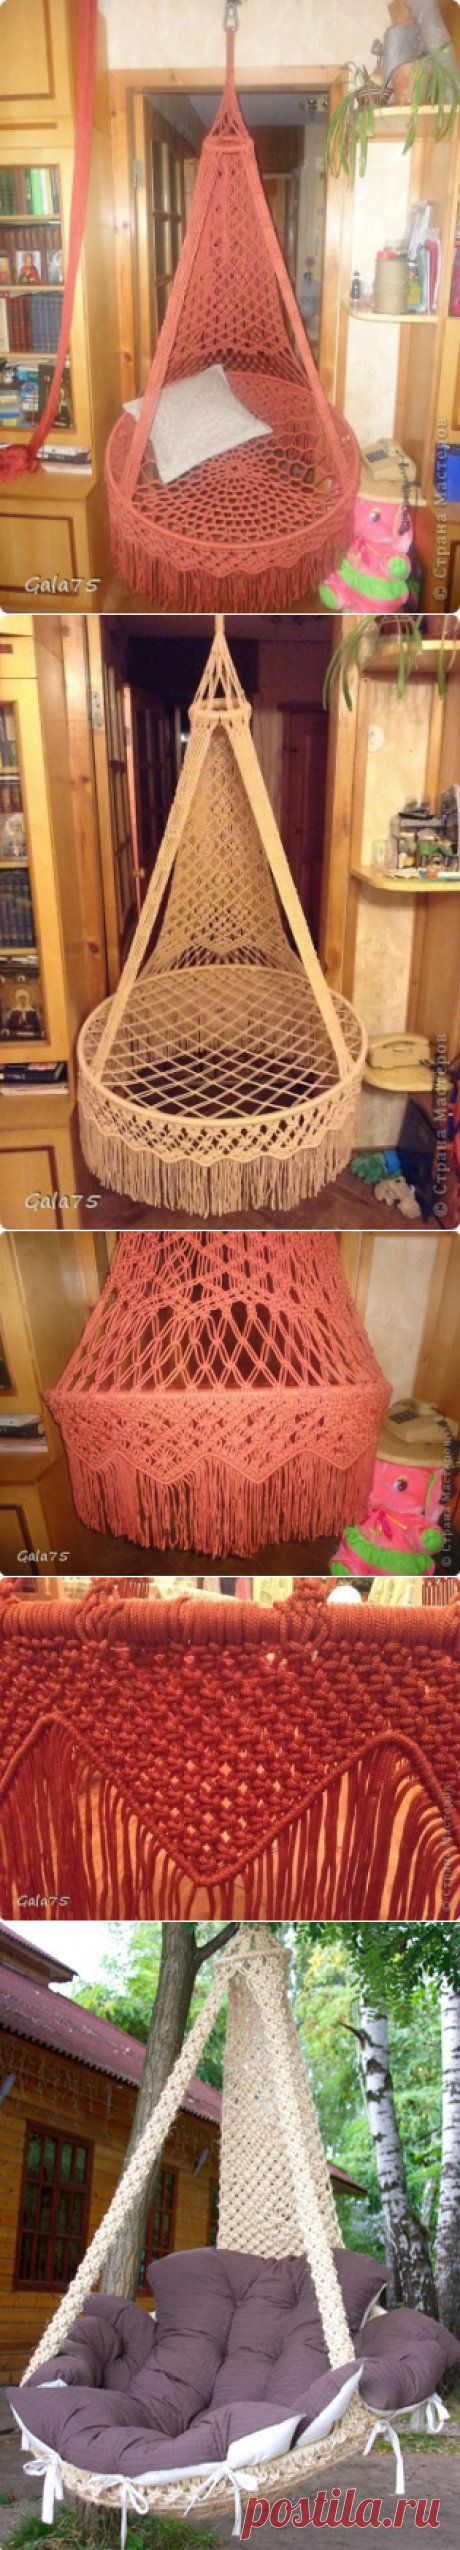 Weaving master class a chair hammock in style of a macrame